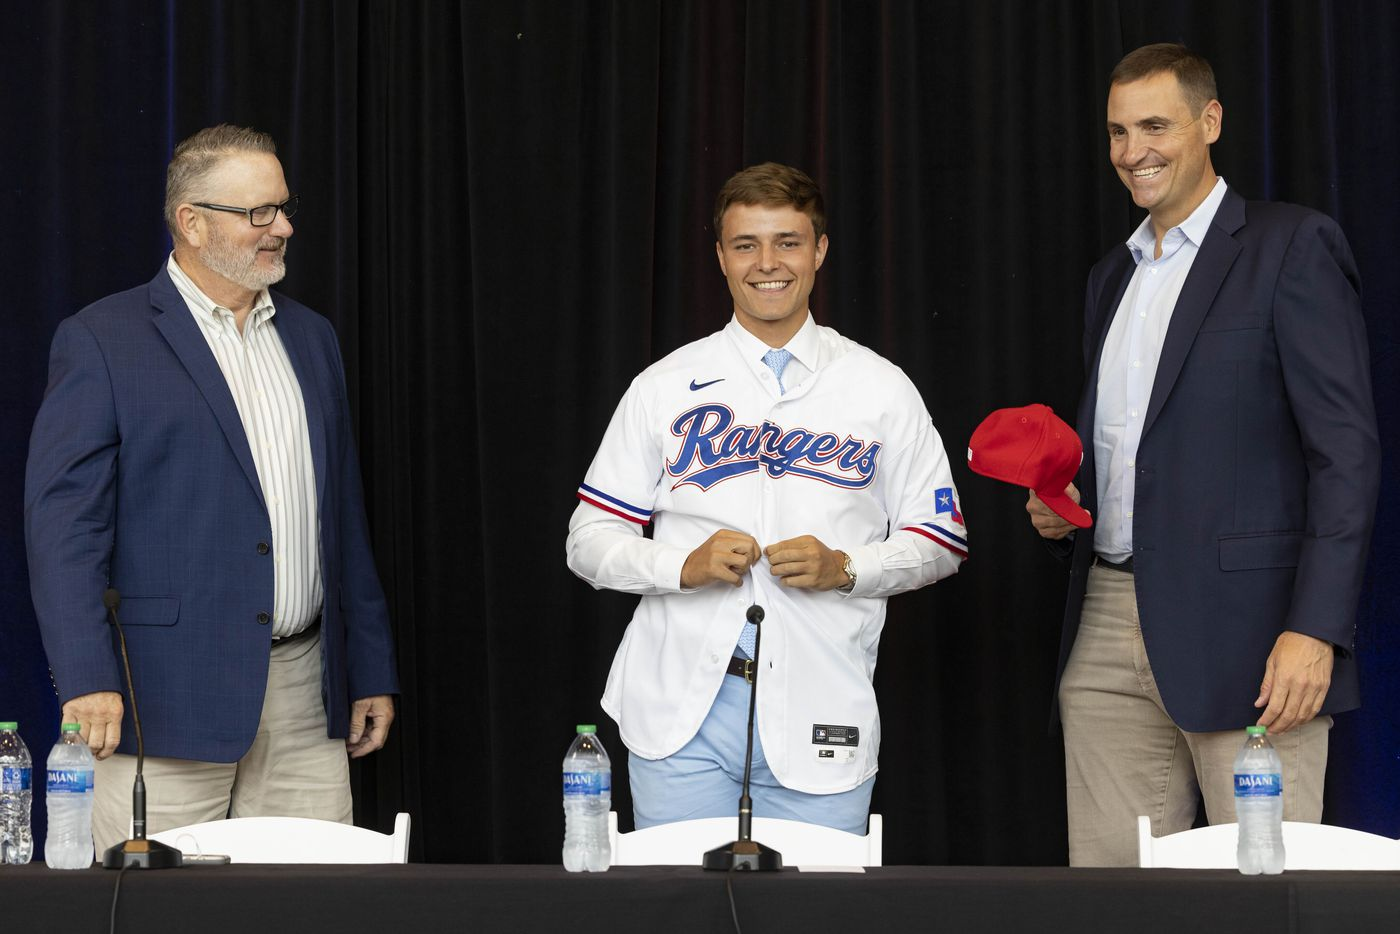 Kip Fagg (left), Texas Rangers Senior Director of Amateur Scouting, and Chris Young (right), Rangers Executive Vice President and General Manager, watch as right-handed pitcher Jack Leiter from Vanderbilt University puts on his Texas Rangers jersey following the announcement of his signing on Tuesday, July 27, 2021, at Globe Life Field in Arlington. Leiter was the club's 2021 MLB Draft first round selection and the draft's second overall pick. (Juan Figueroa/The Dallas Morning News)